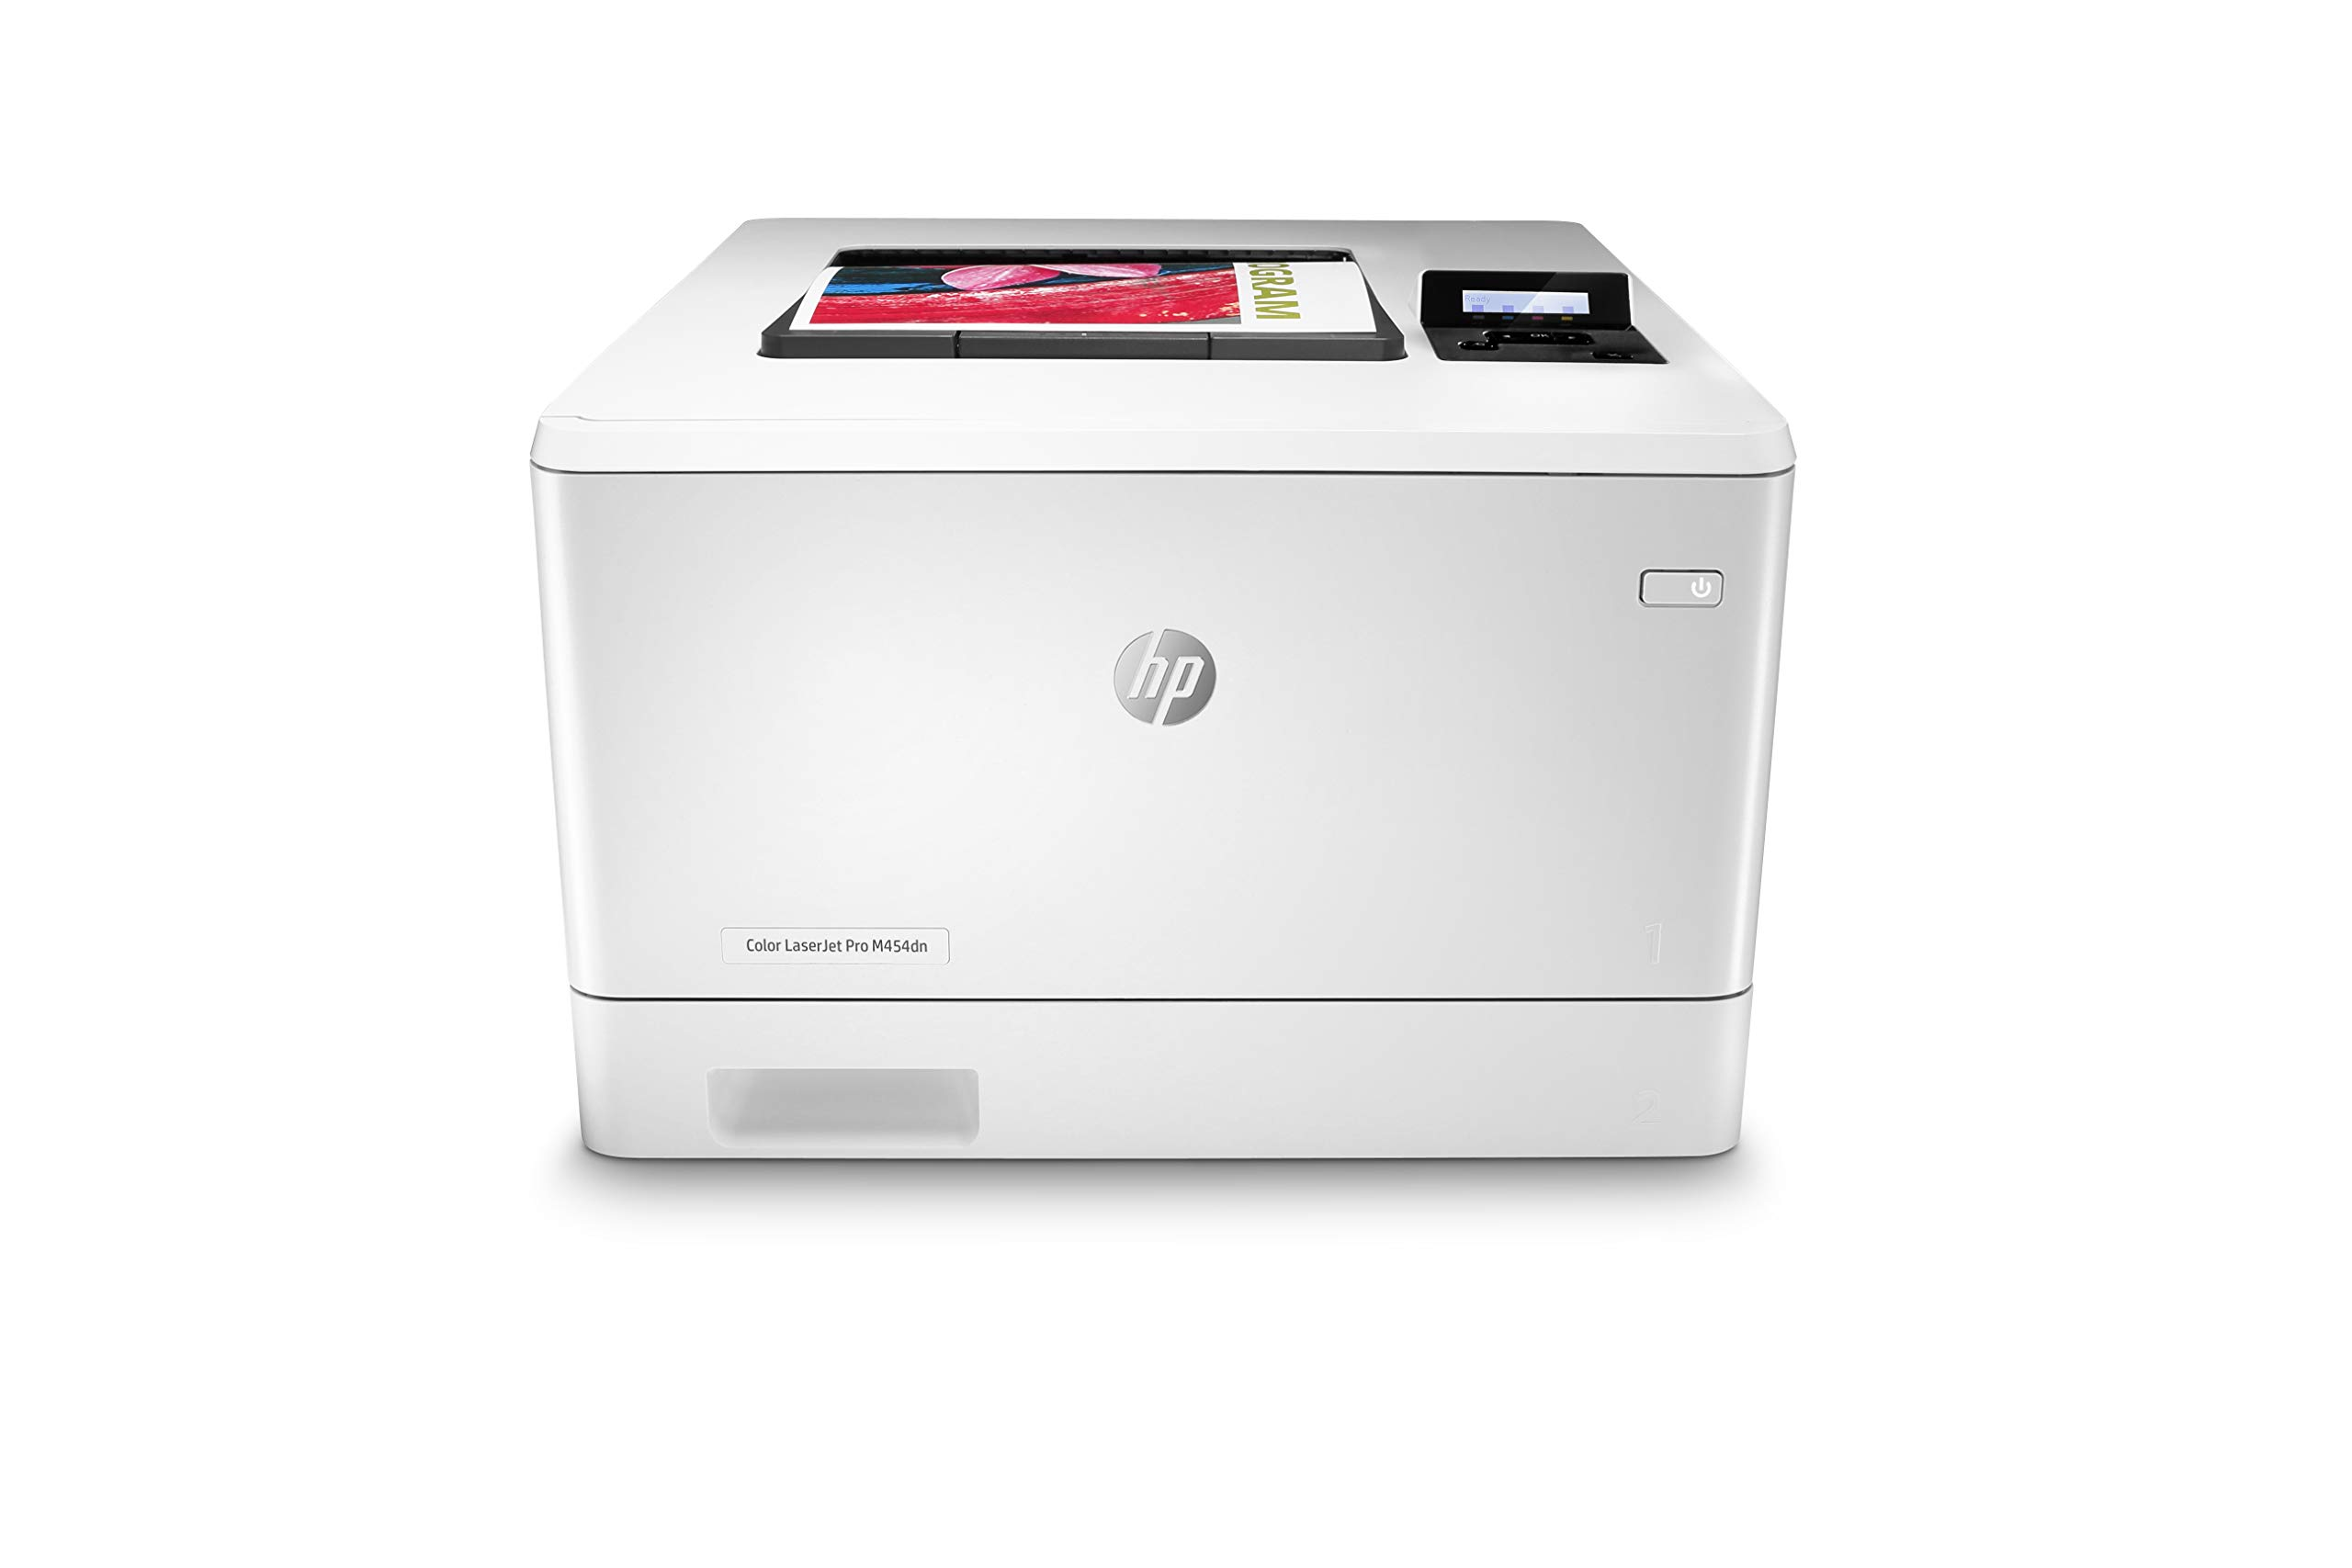 Hp Color Laserjet Pro M454Dn Printer (W1Y44A) - Ethernet Only by HP